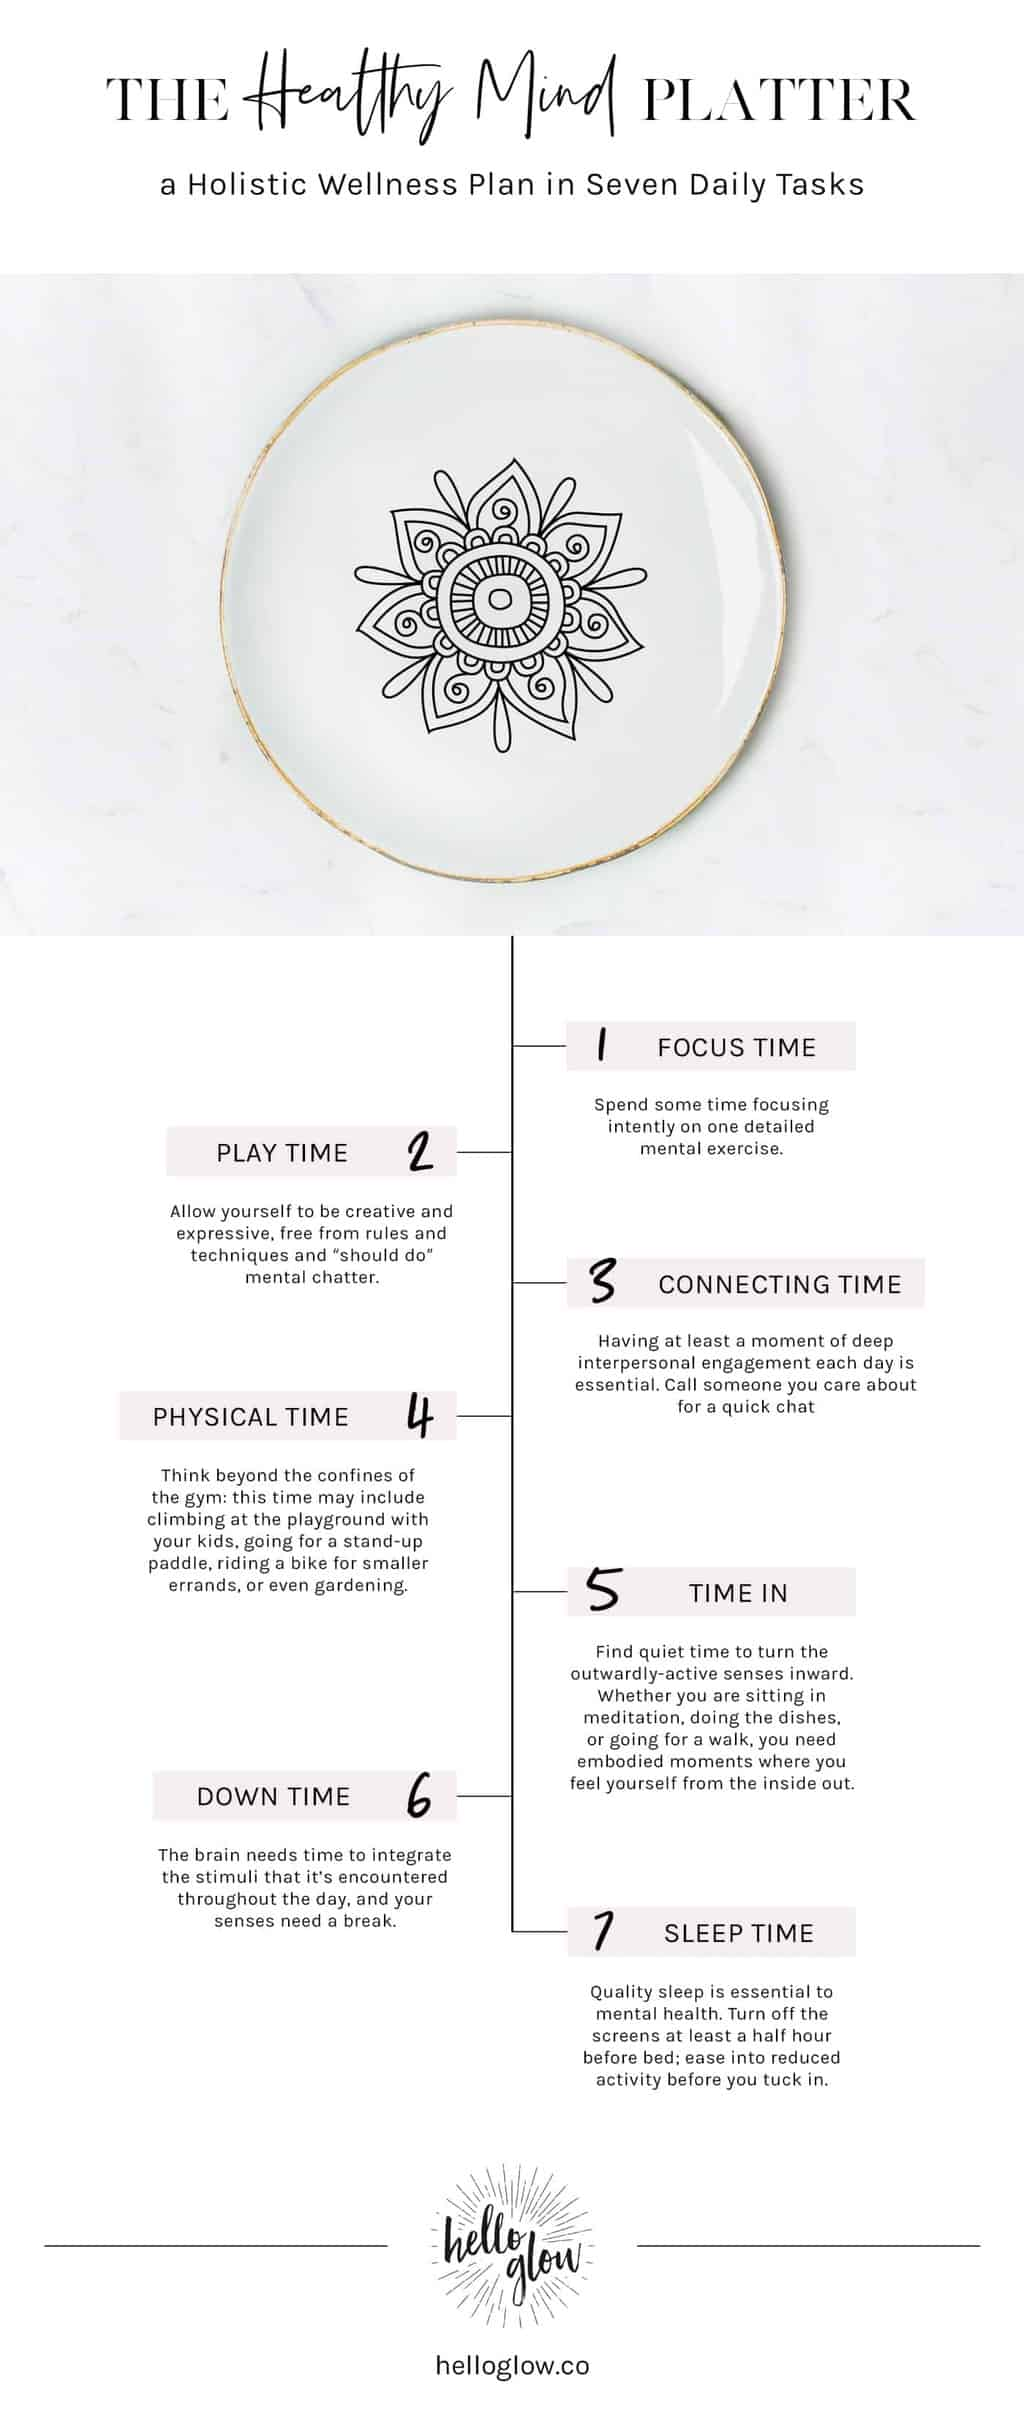 The Healthy Mind Platter: a Holistic Wellness Plan in Seven Daily Tasks